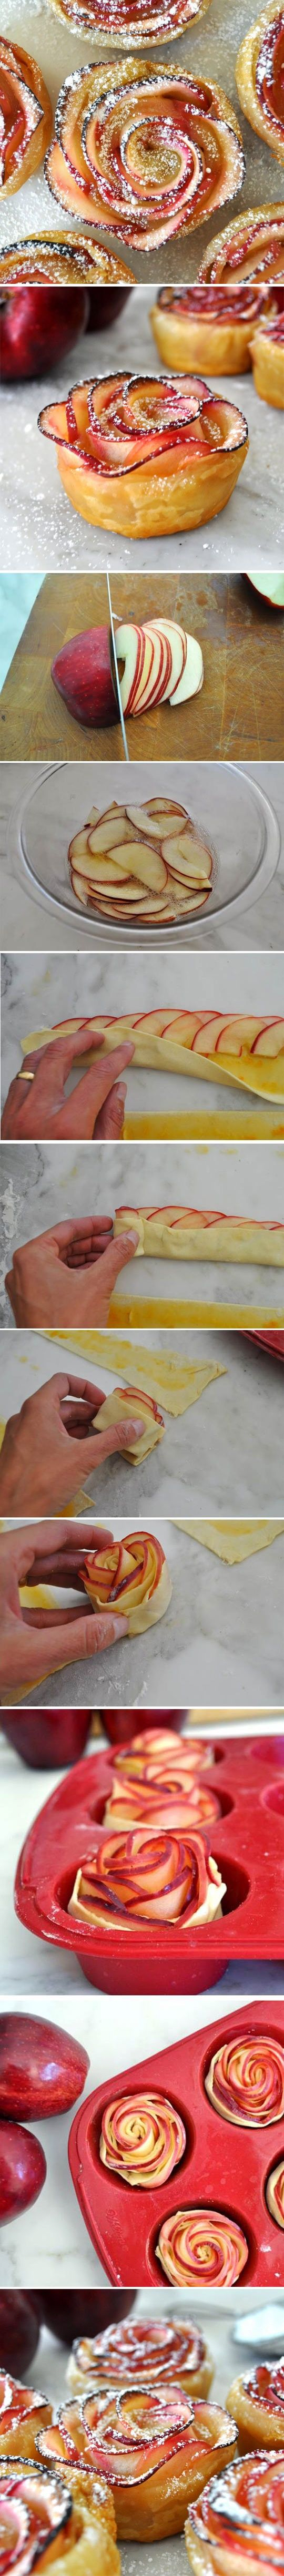 Ingredients: to make 6 roses 1 frozen puff pastry sheet, thawed 2 red organic apples (I used red delicious) half lemon, juice 1 tablespoon of flour, to sprinkle the counter 3 tablespoons of apricot preserve cinnamon (optional) powder sugar for decorating (optional) Full recipe you will find there >> CookingWithManuela For More Incredible Pins For Pinterest, …